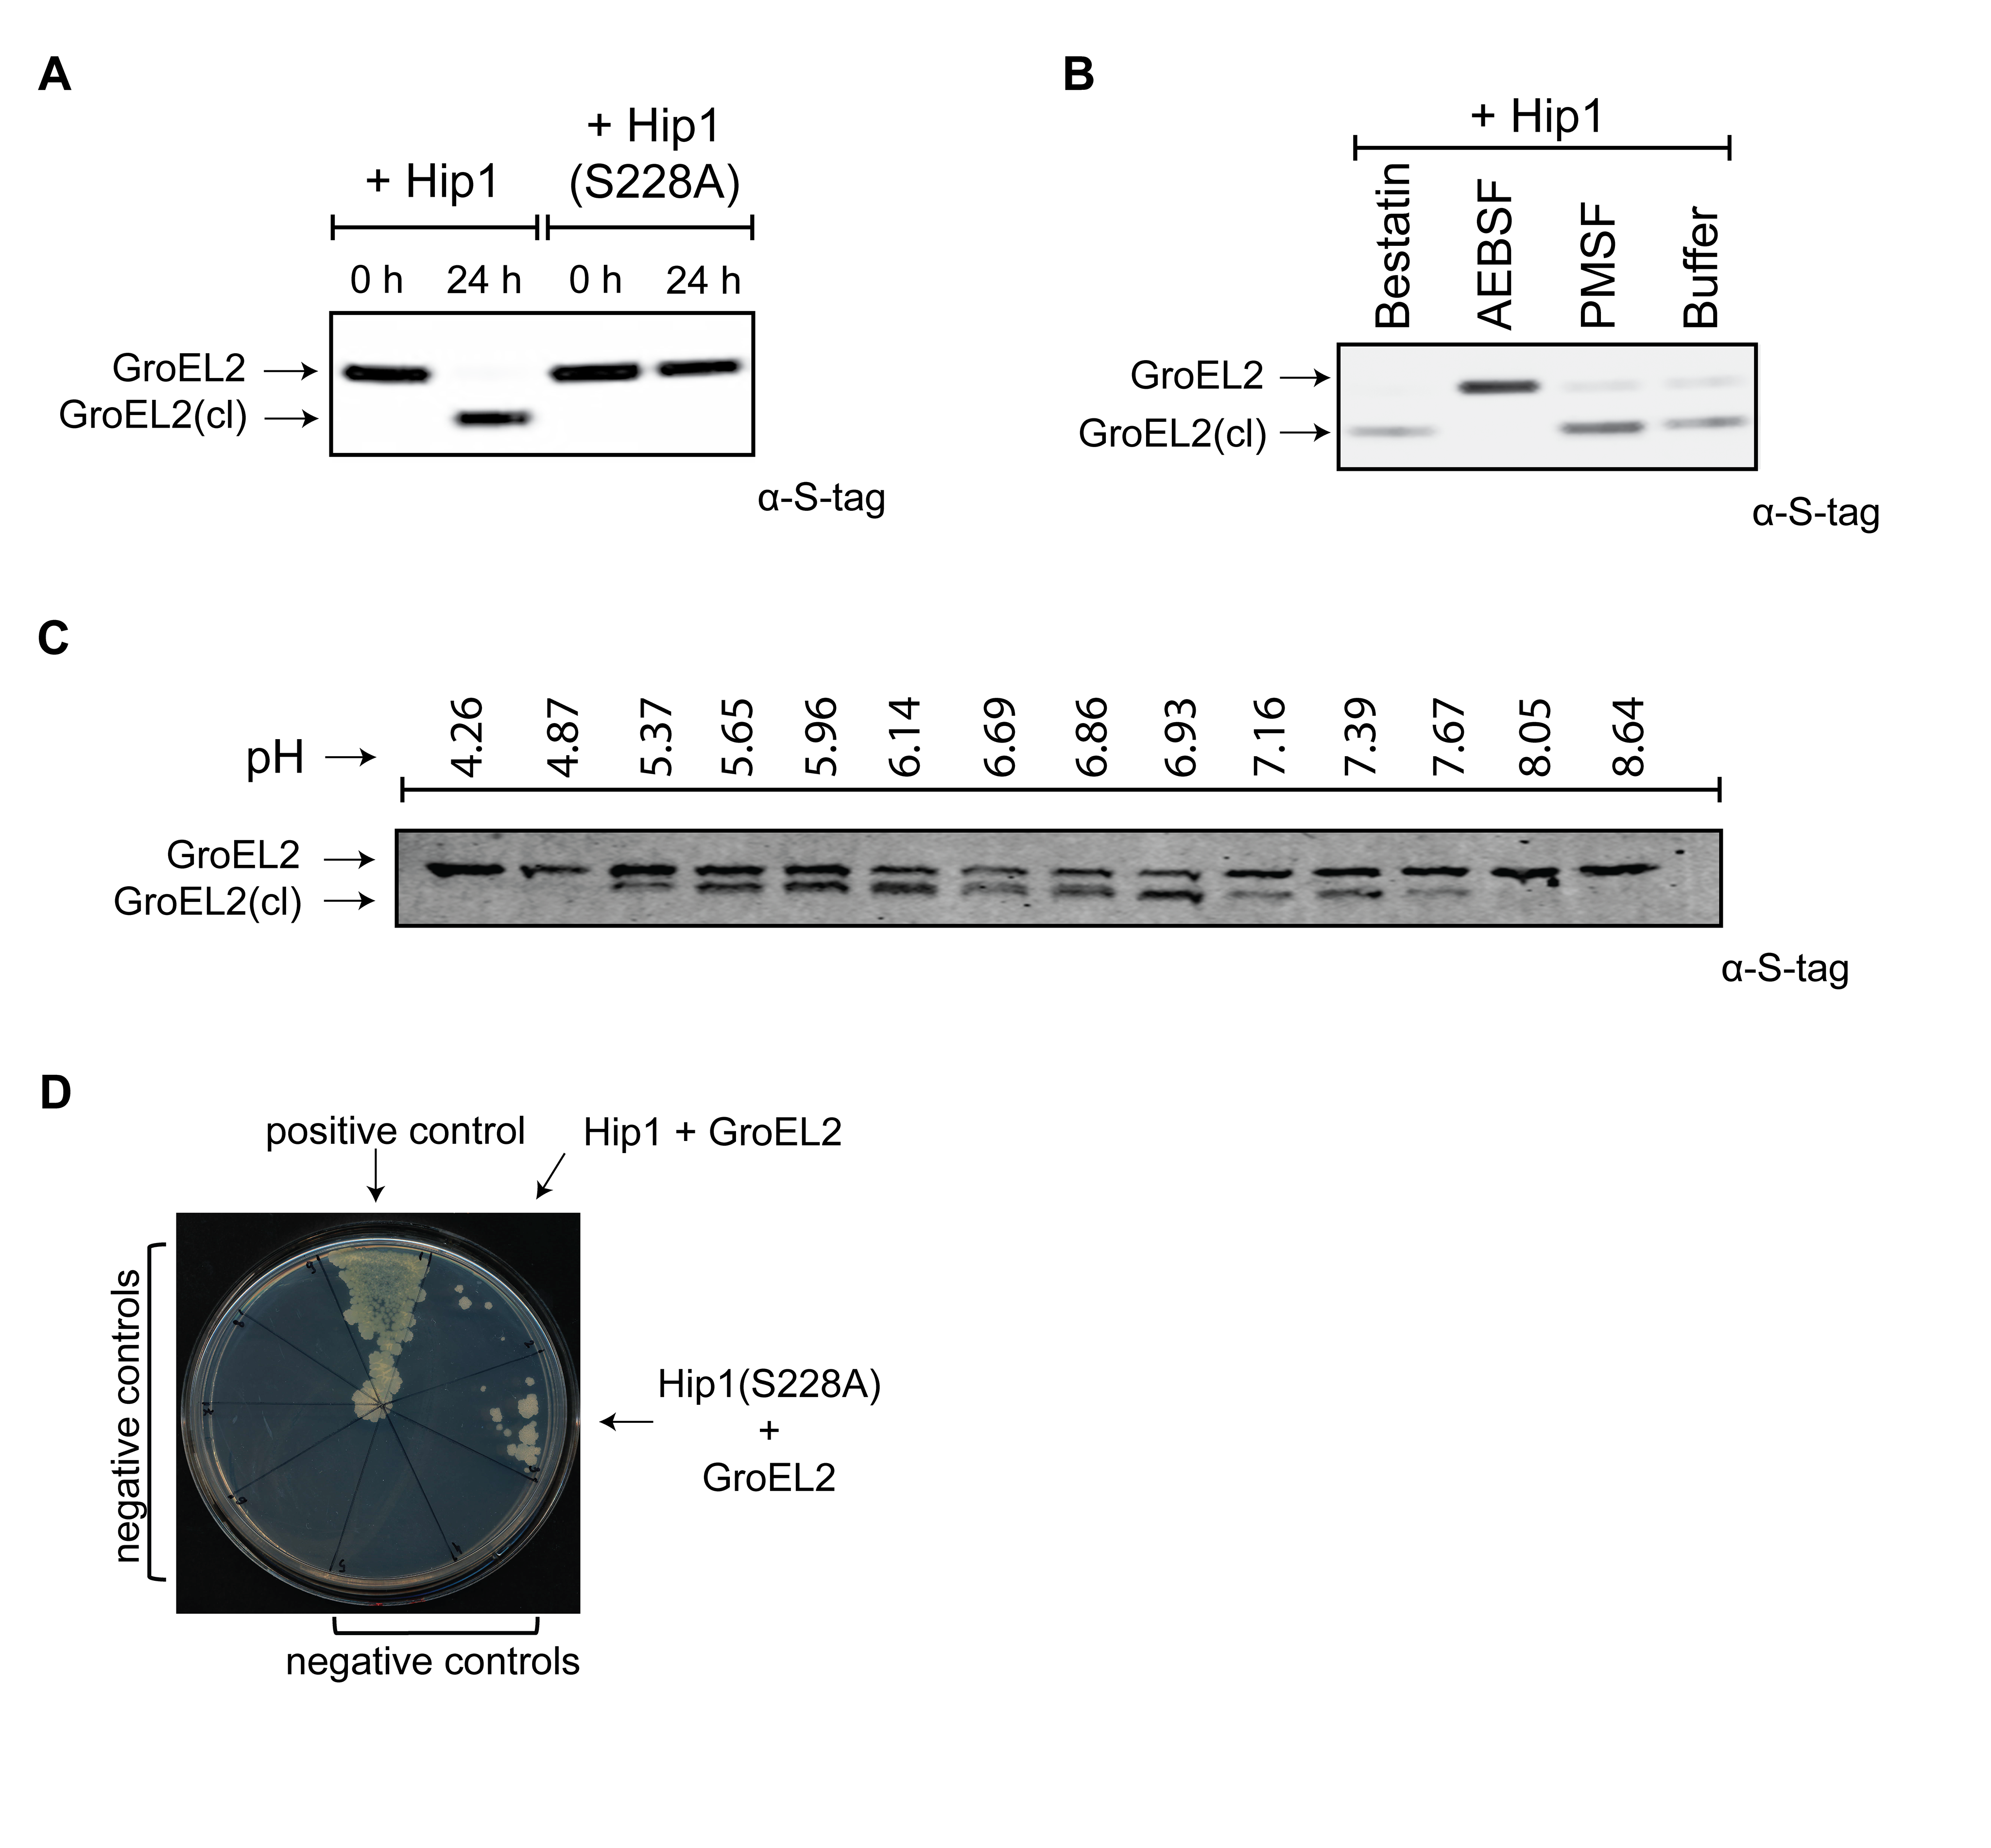 <i>Mtb</i> GroEL2 is a physiological substrate of Hip1 protease activity.